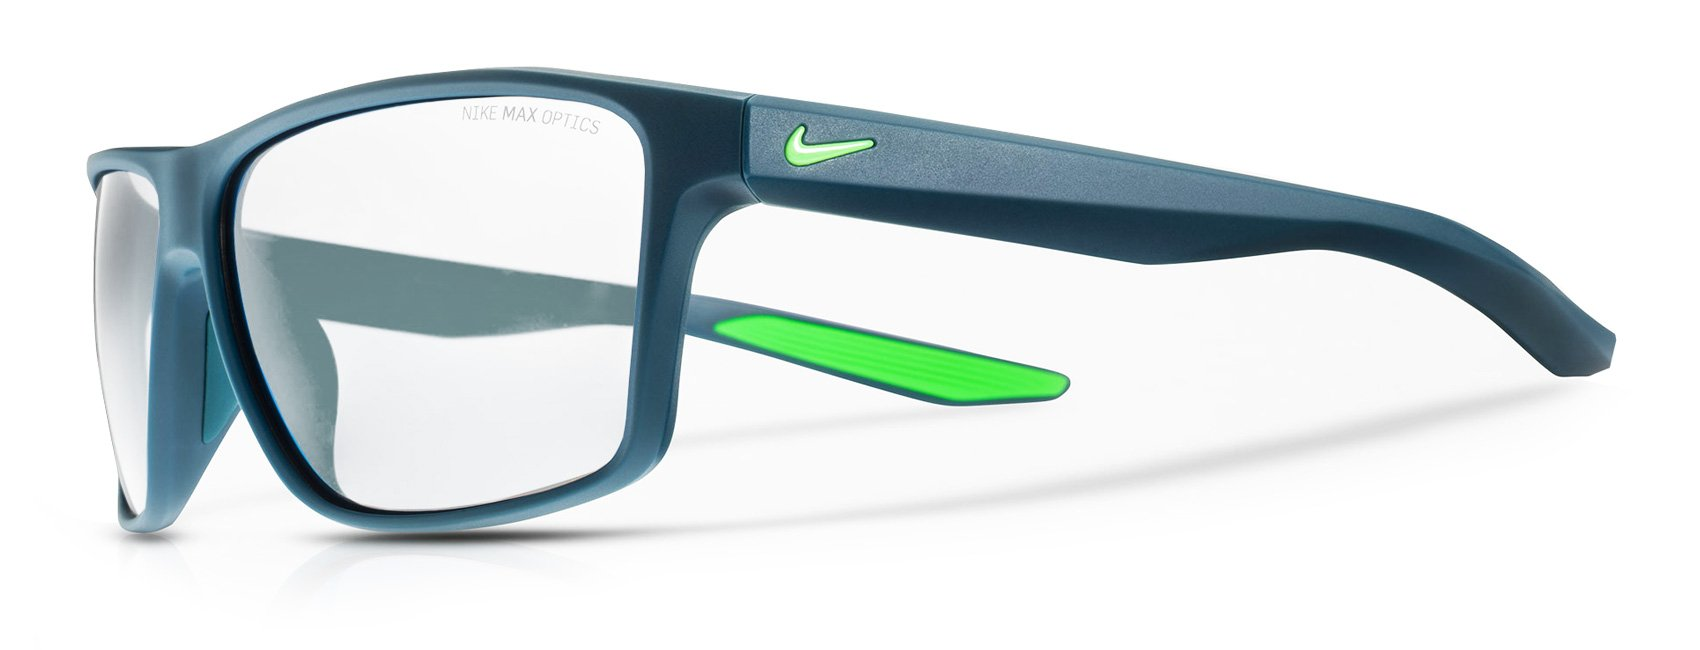 Nike Lead Glasses Premier